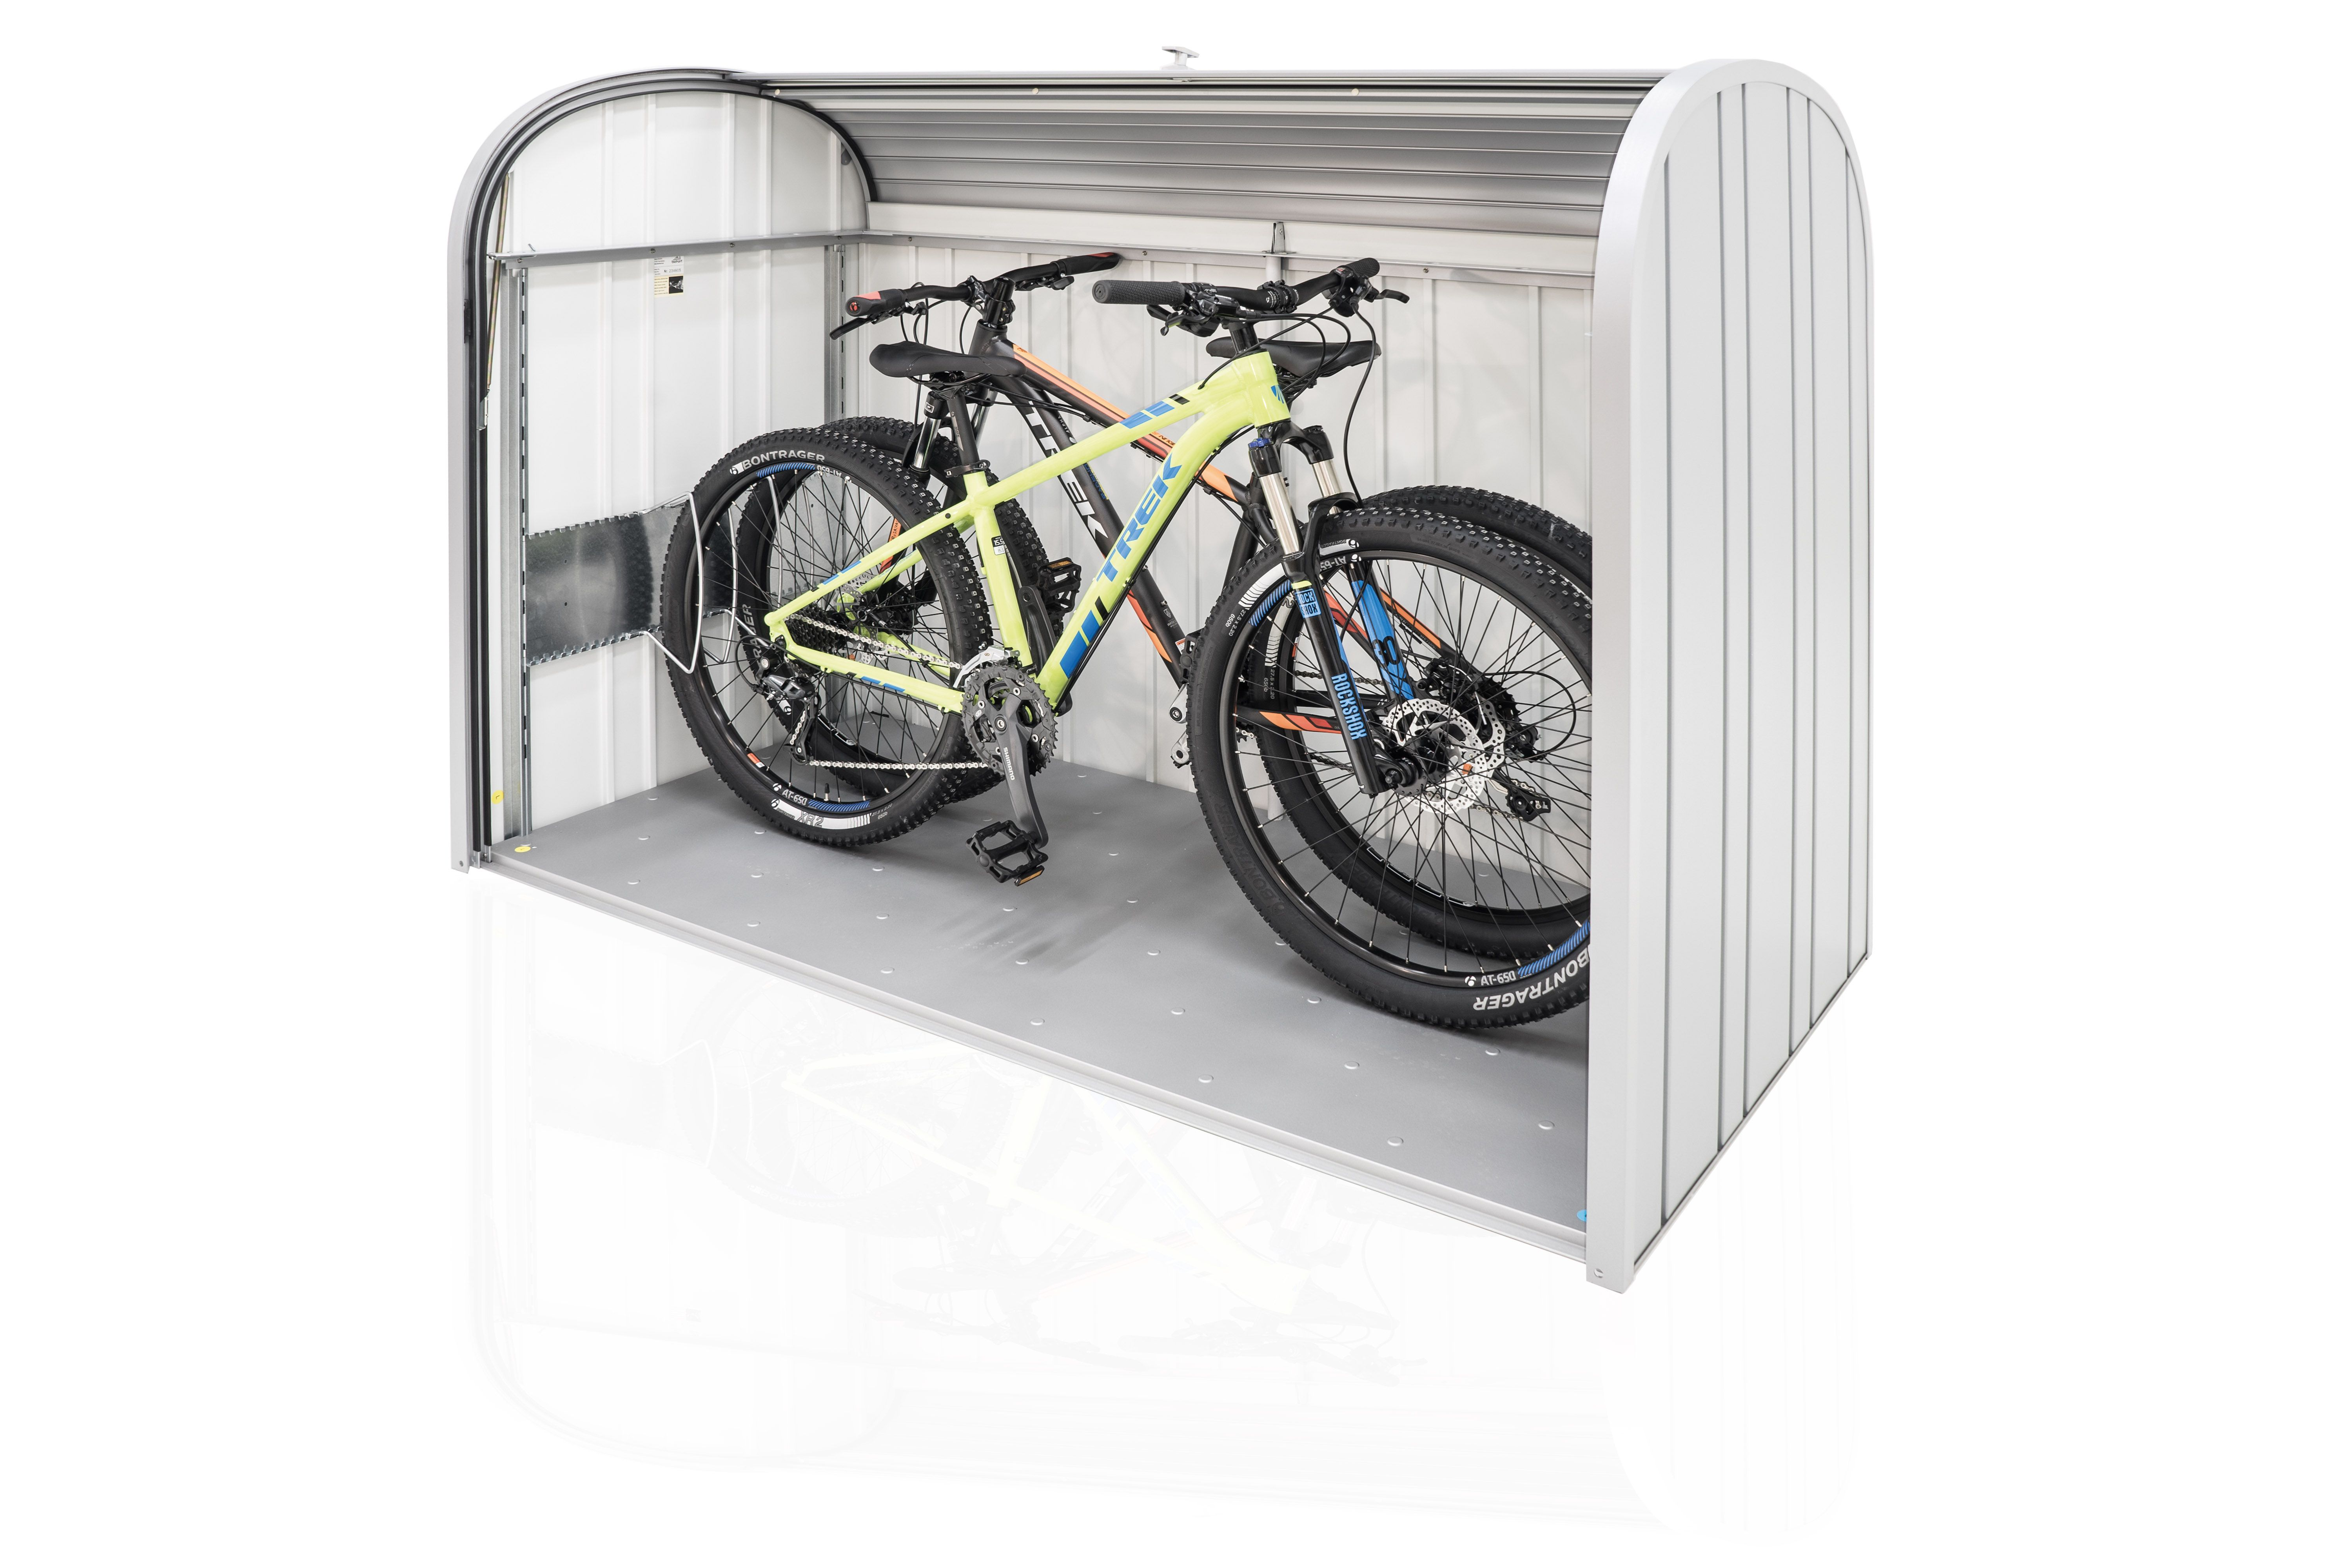 fahrradgarage im storemax 190 k nnen bis zu 2 erwachsenen fahrr der bequem untergebracht werden. Black Bedroom Furniture Sets. Home Design Ideas